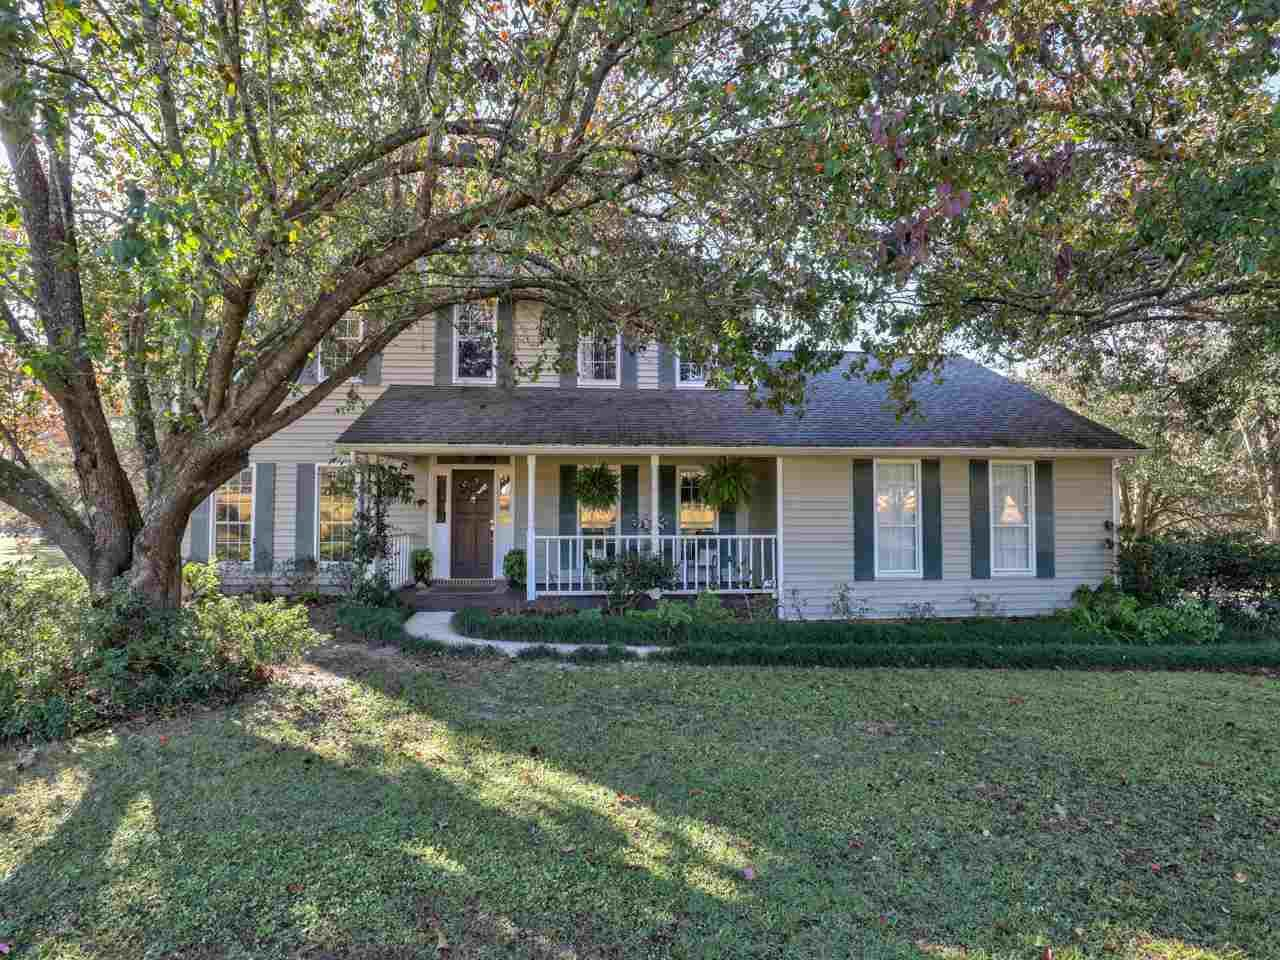 1786 VINEYARD Way, Tallahassee, FL 32317 - MLS#: 326562